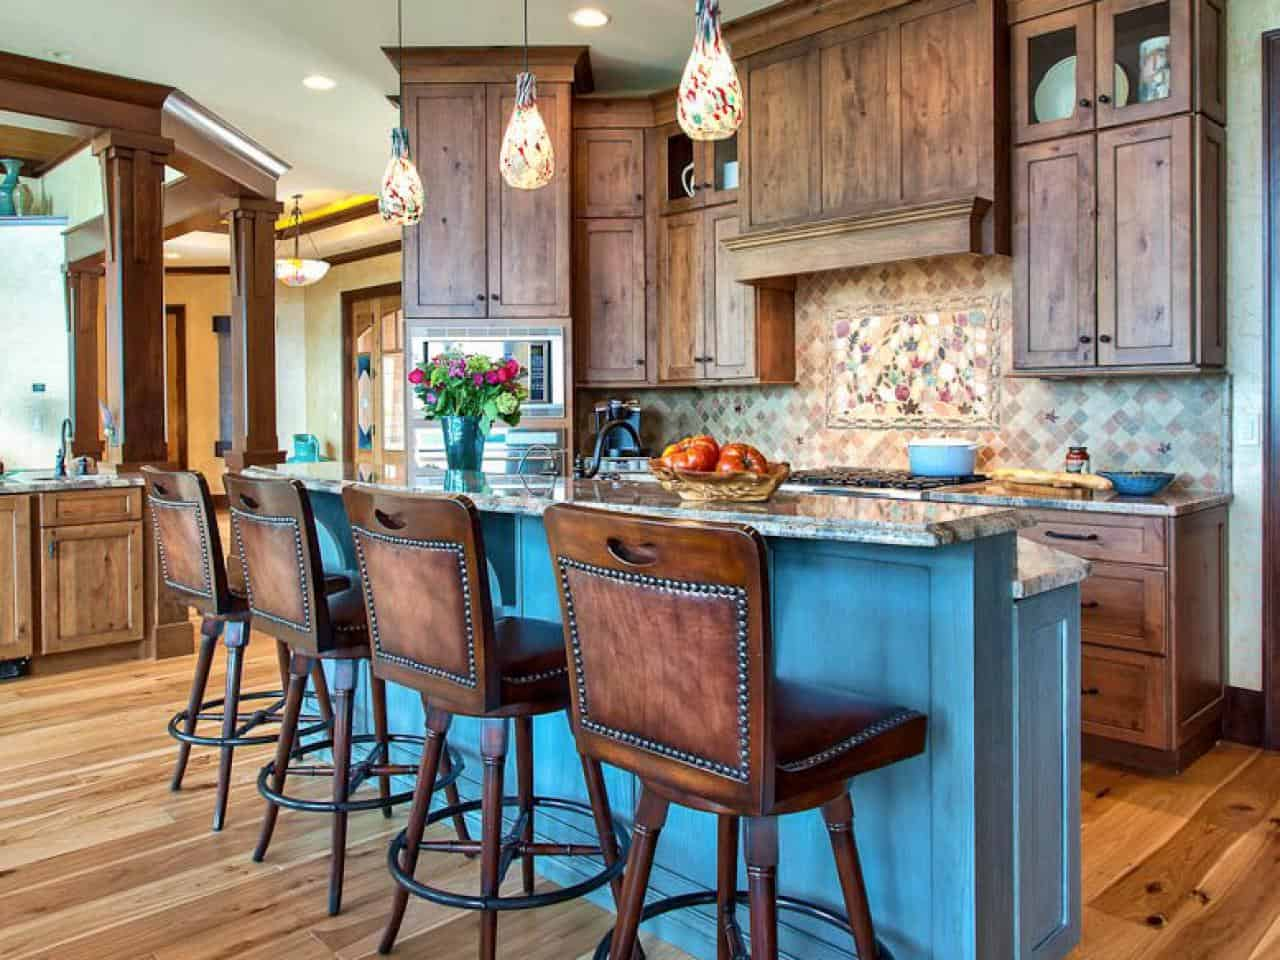 Rustic Kitchen Island Ideas To Consider - How to decorate a kitchen island